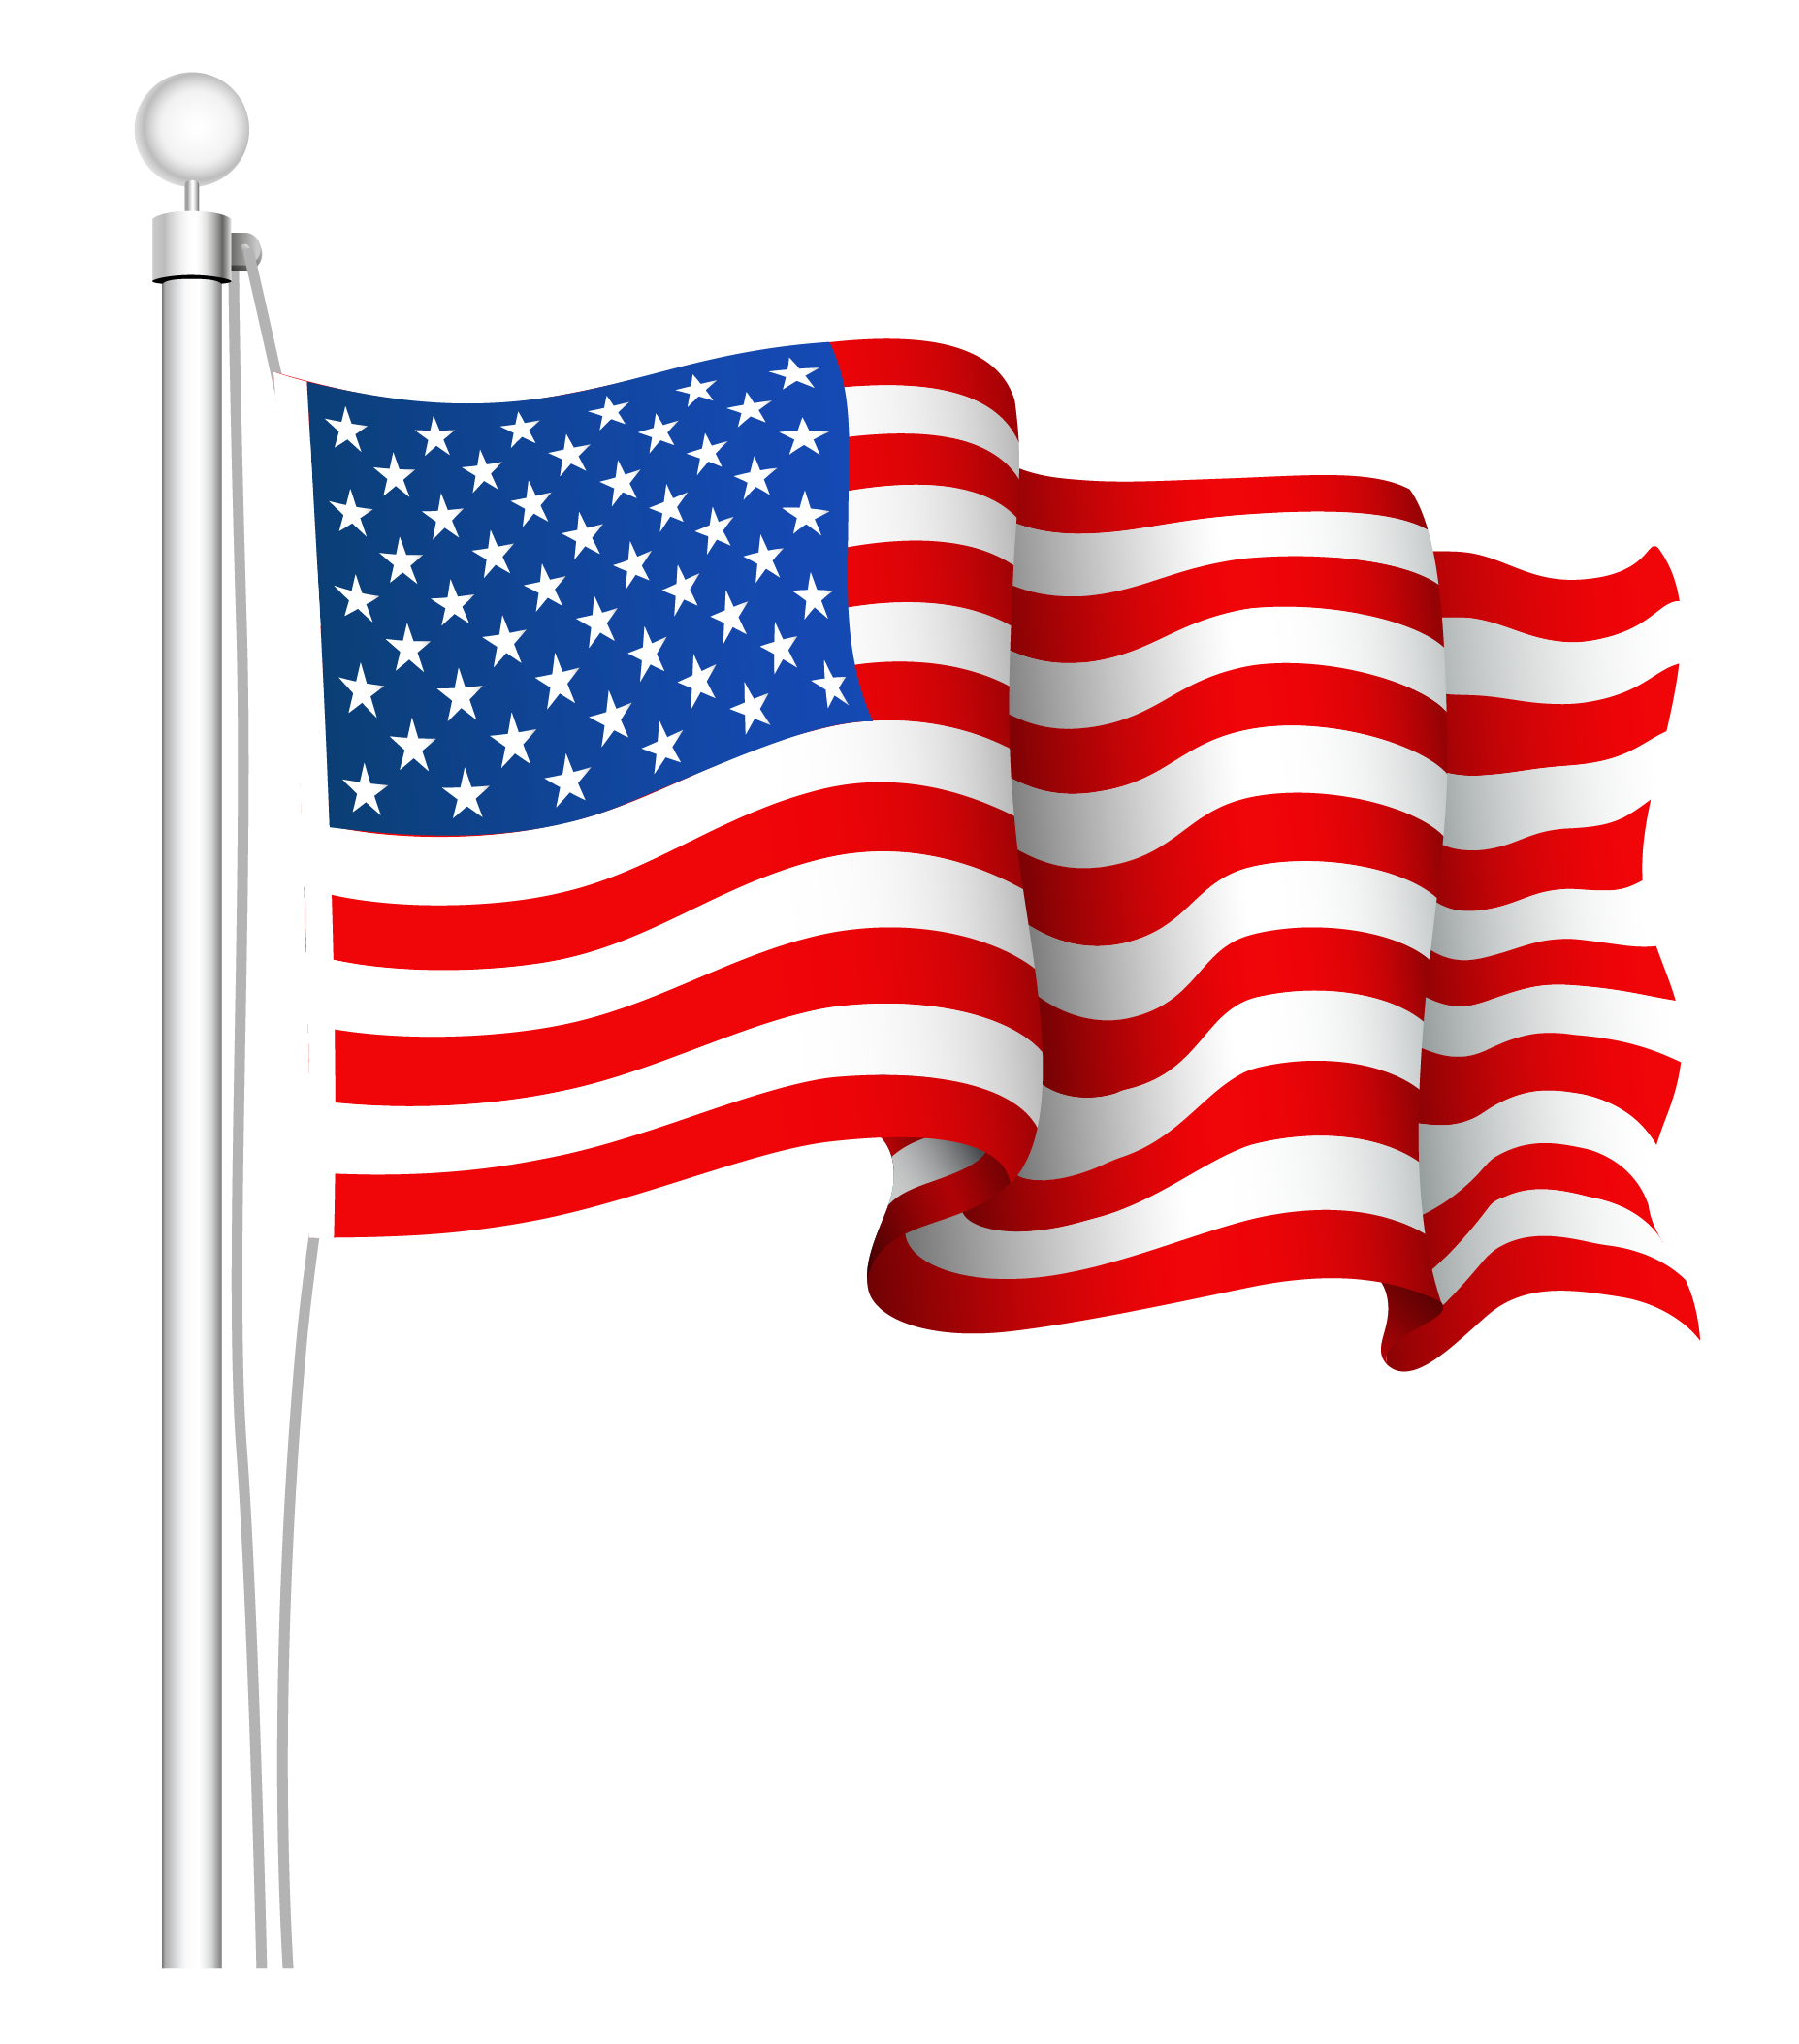 USA flag PNG - PNG image with transparent background